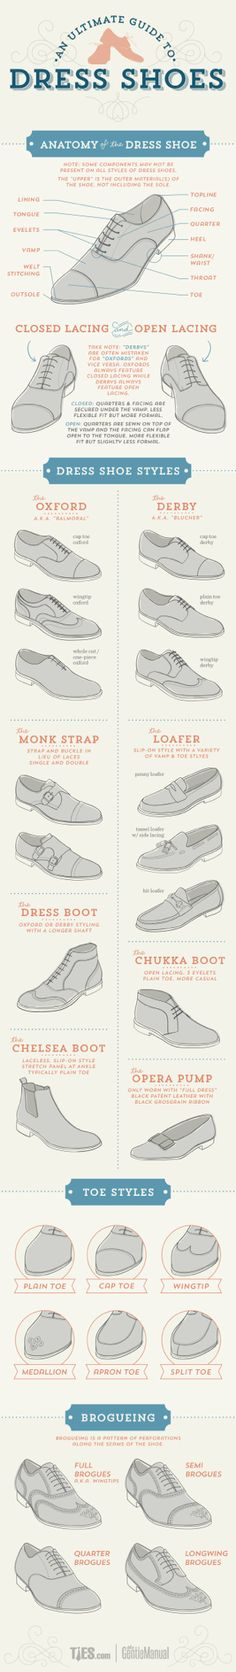 Man Guide to Dress Shoes